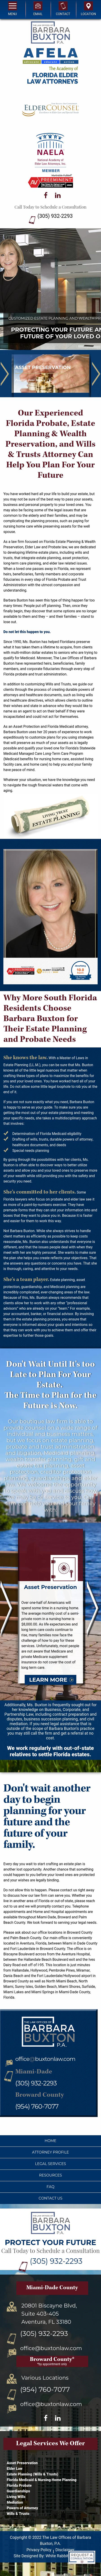 The Law Offices of Barbara Buxton, P.A. - Miami FL Lawyers